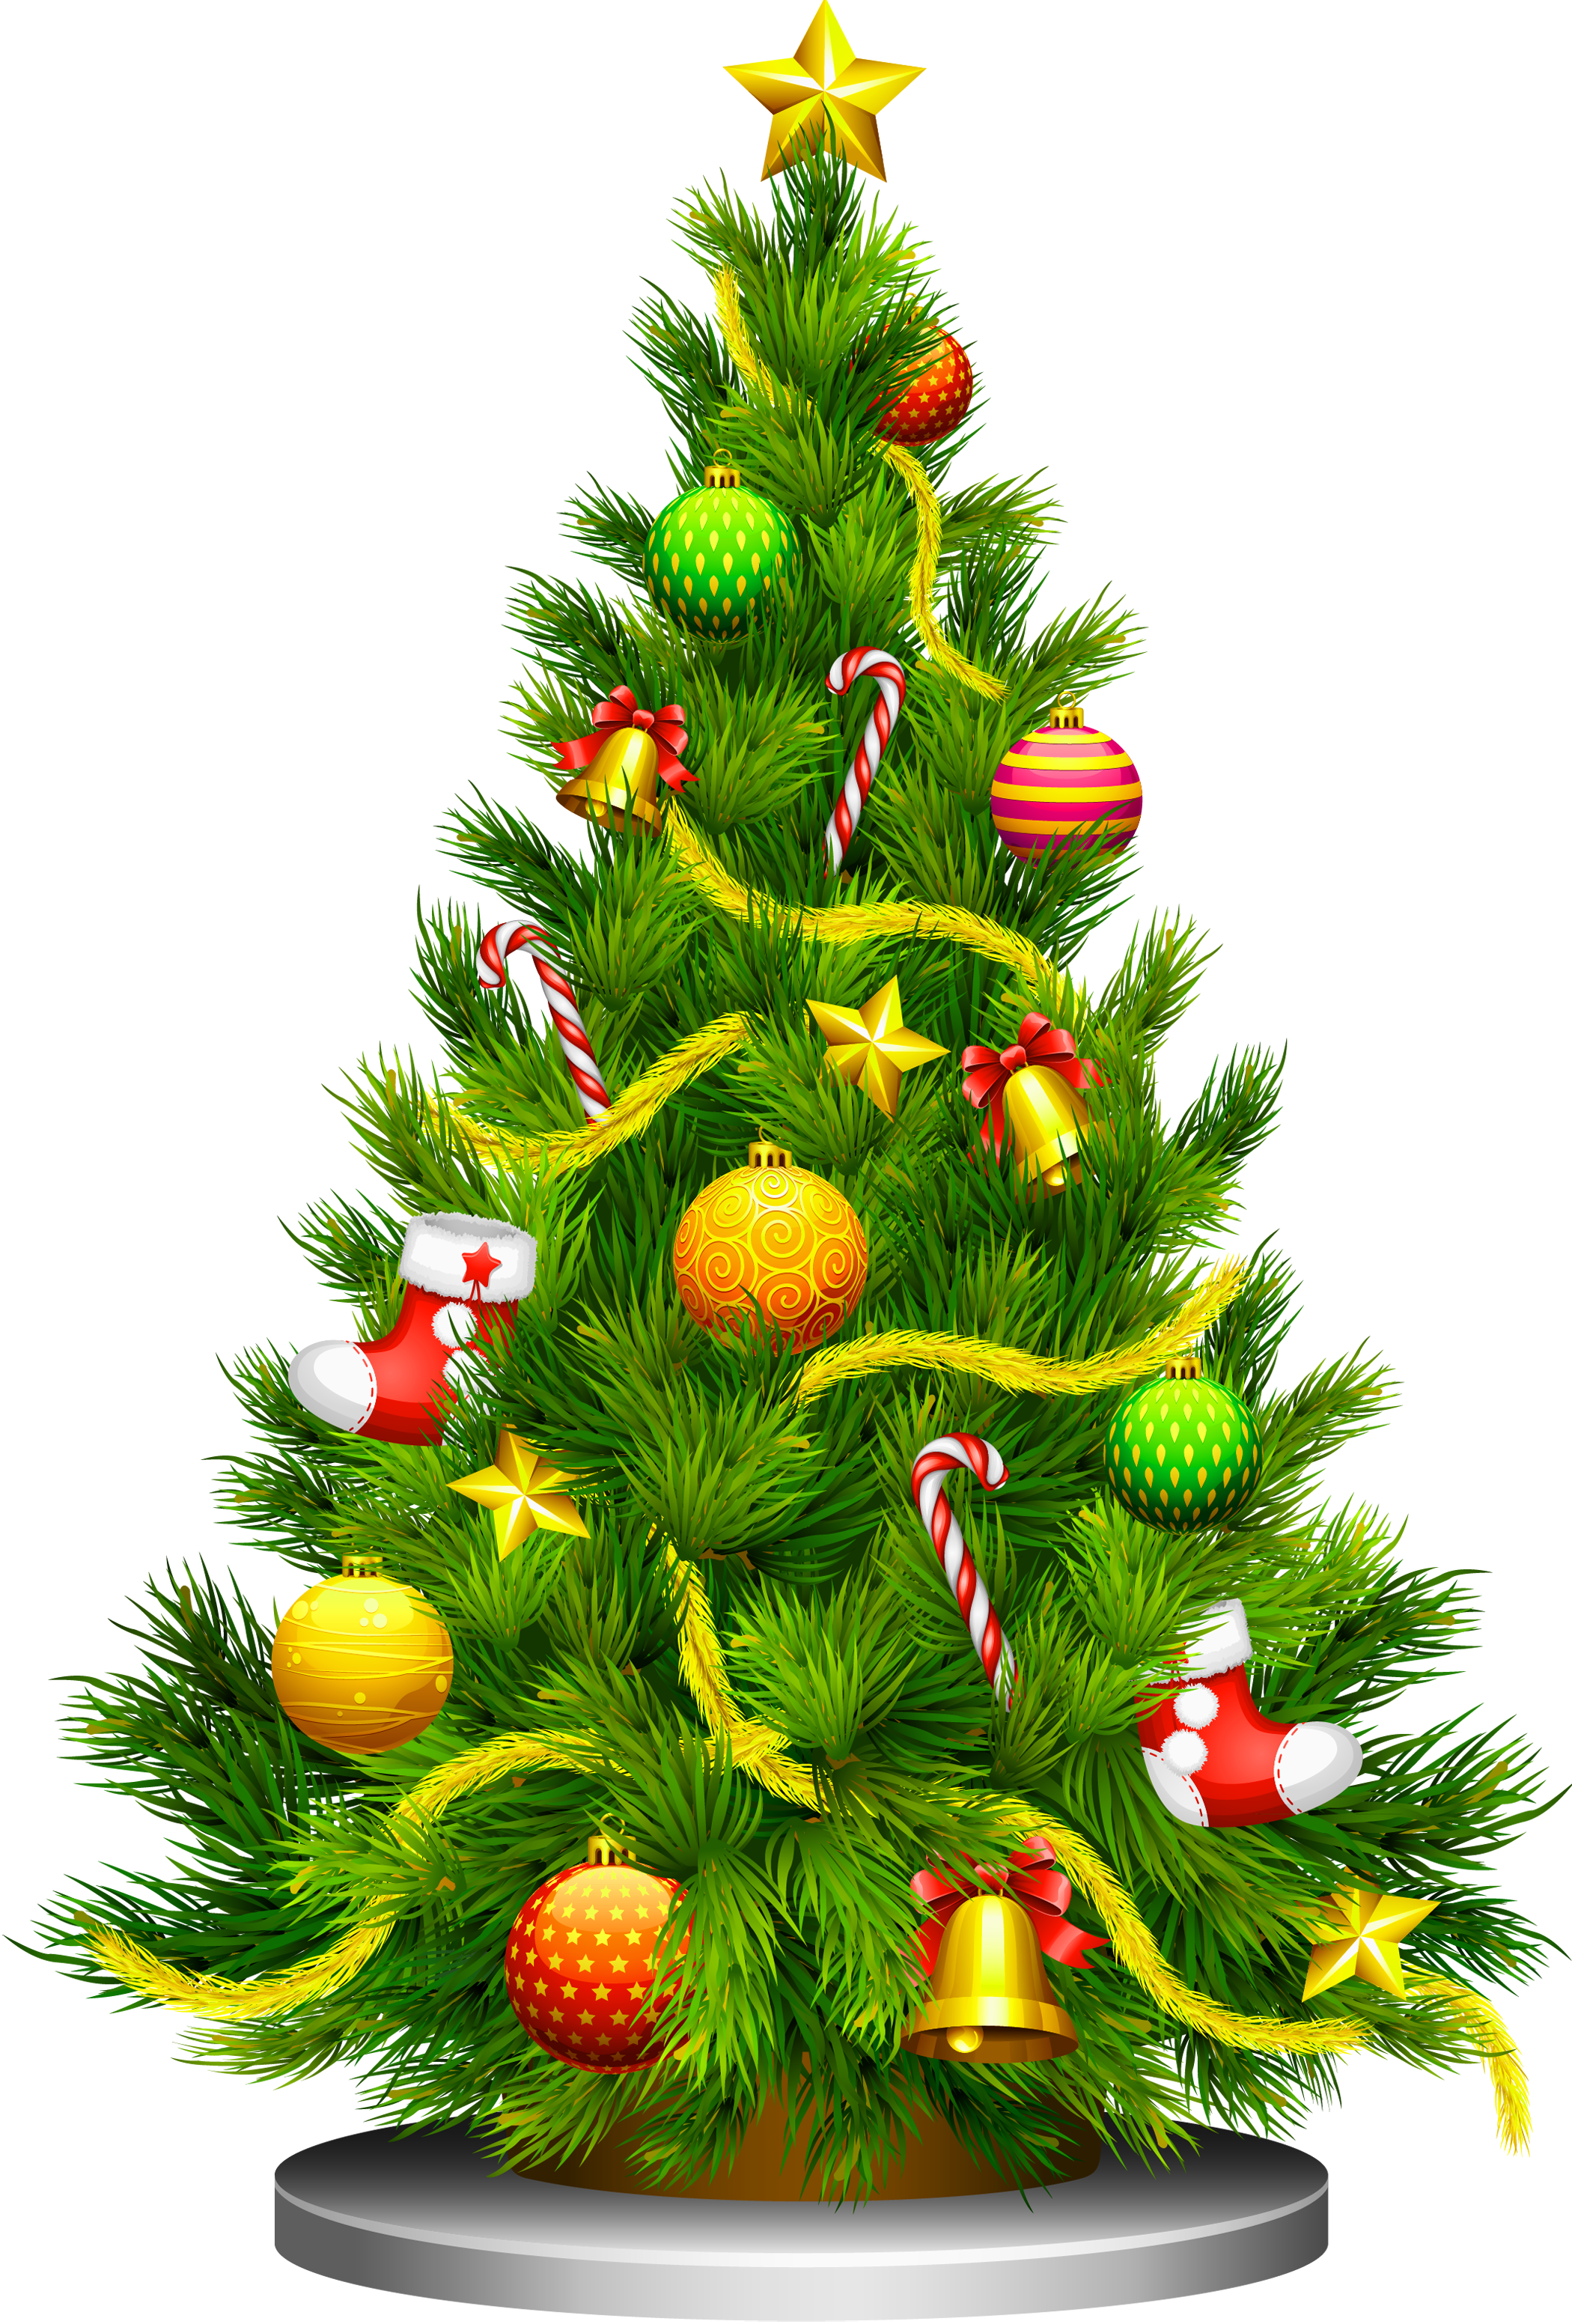 Xmas tree clipart png clipart free Transparent Christmas Tree Clipart | Gallery Yopriceville - High ... clipart free